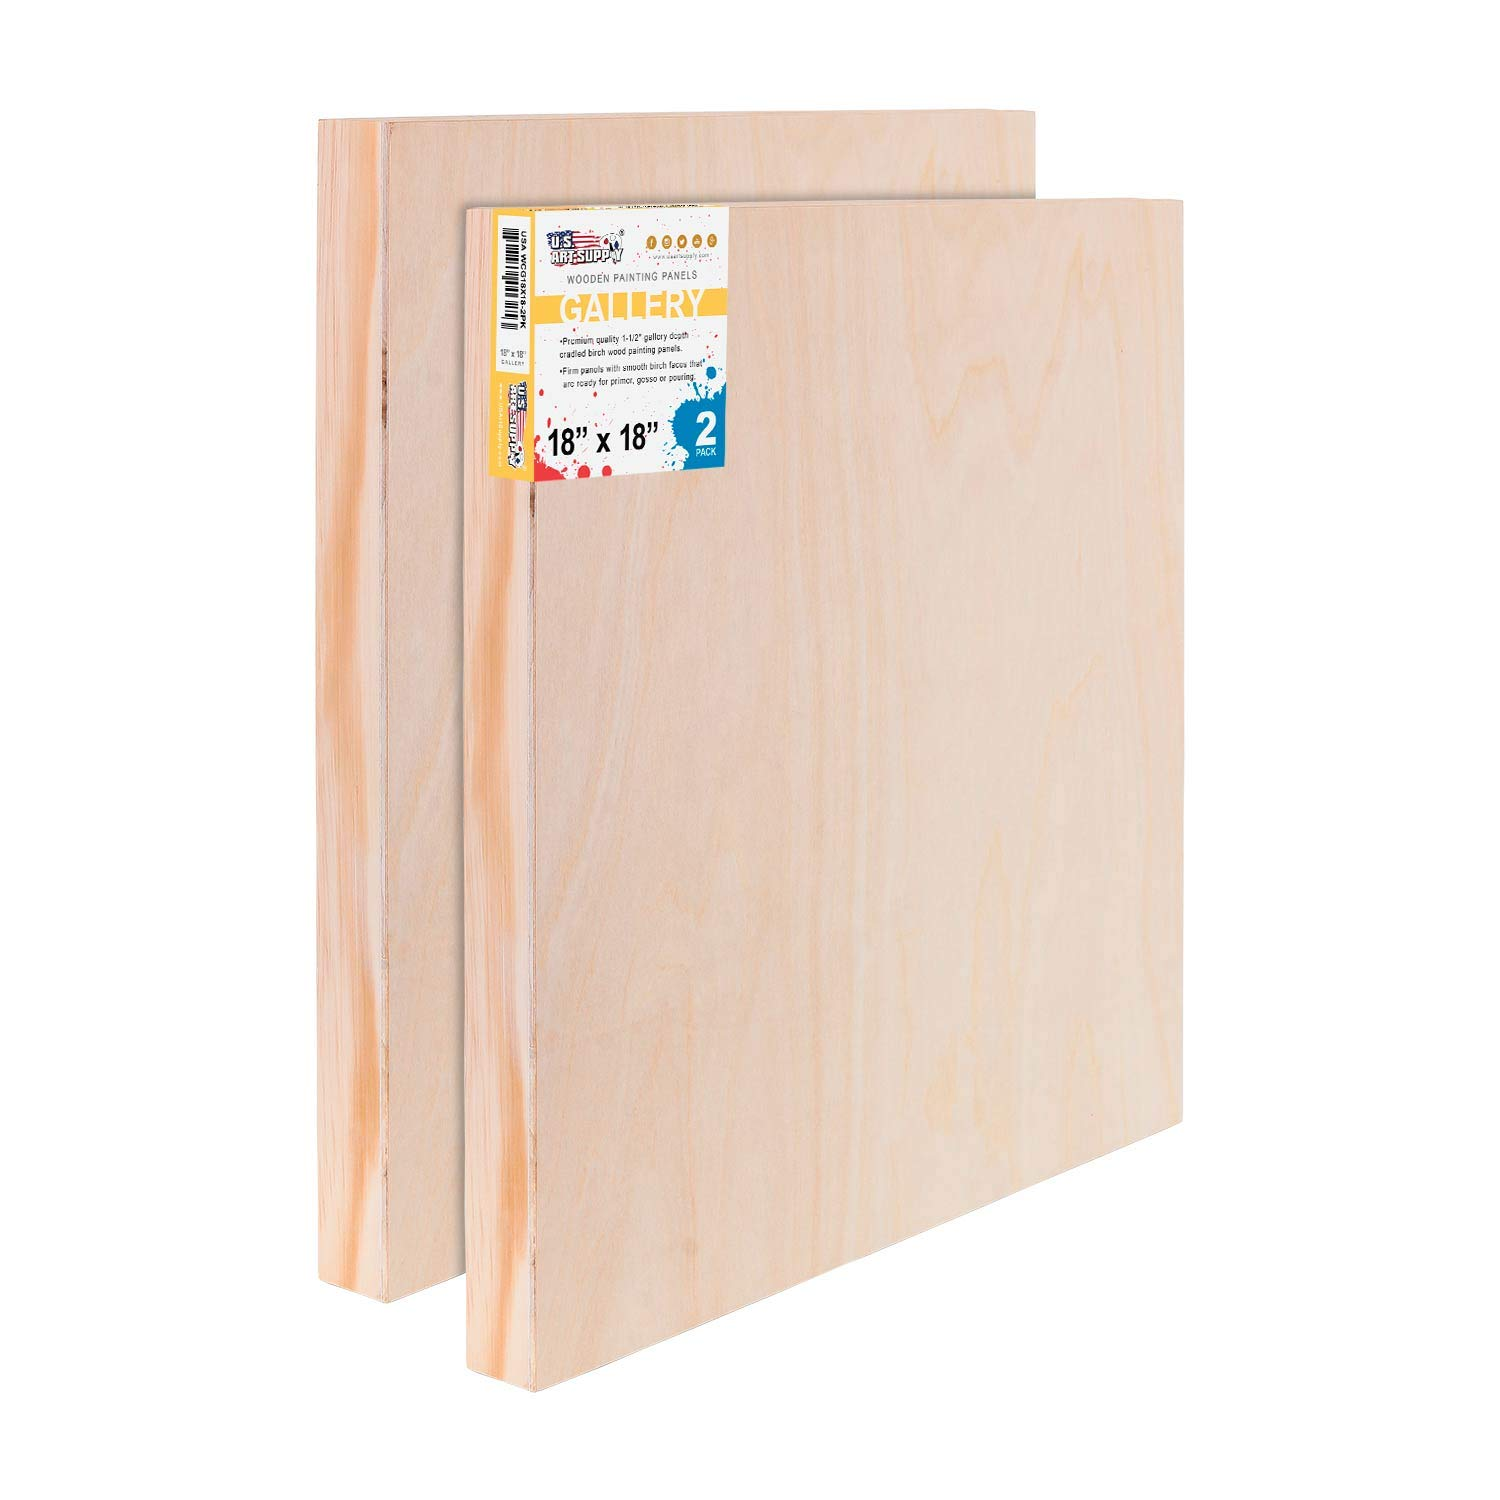 U.S. Art Supply 18'' x 18'' Birch Wood Paint Pouring Panel Boards, Gallery 1-1/2'' Deep Cradle (Pack of 2) - Artist Depth Wooden Wall Canvases - Painting Mixed-Media Craft, Acrylic, Oil, Encaustic